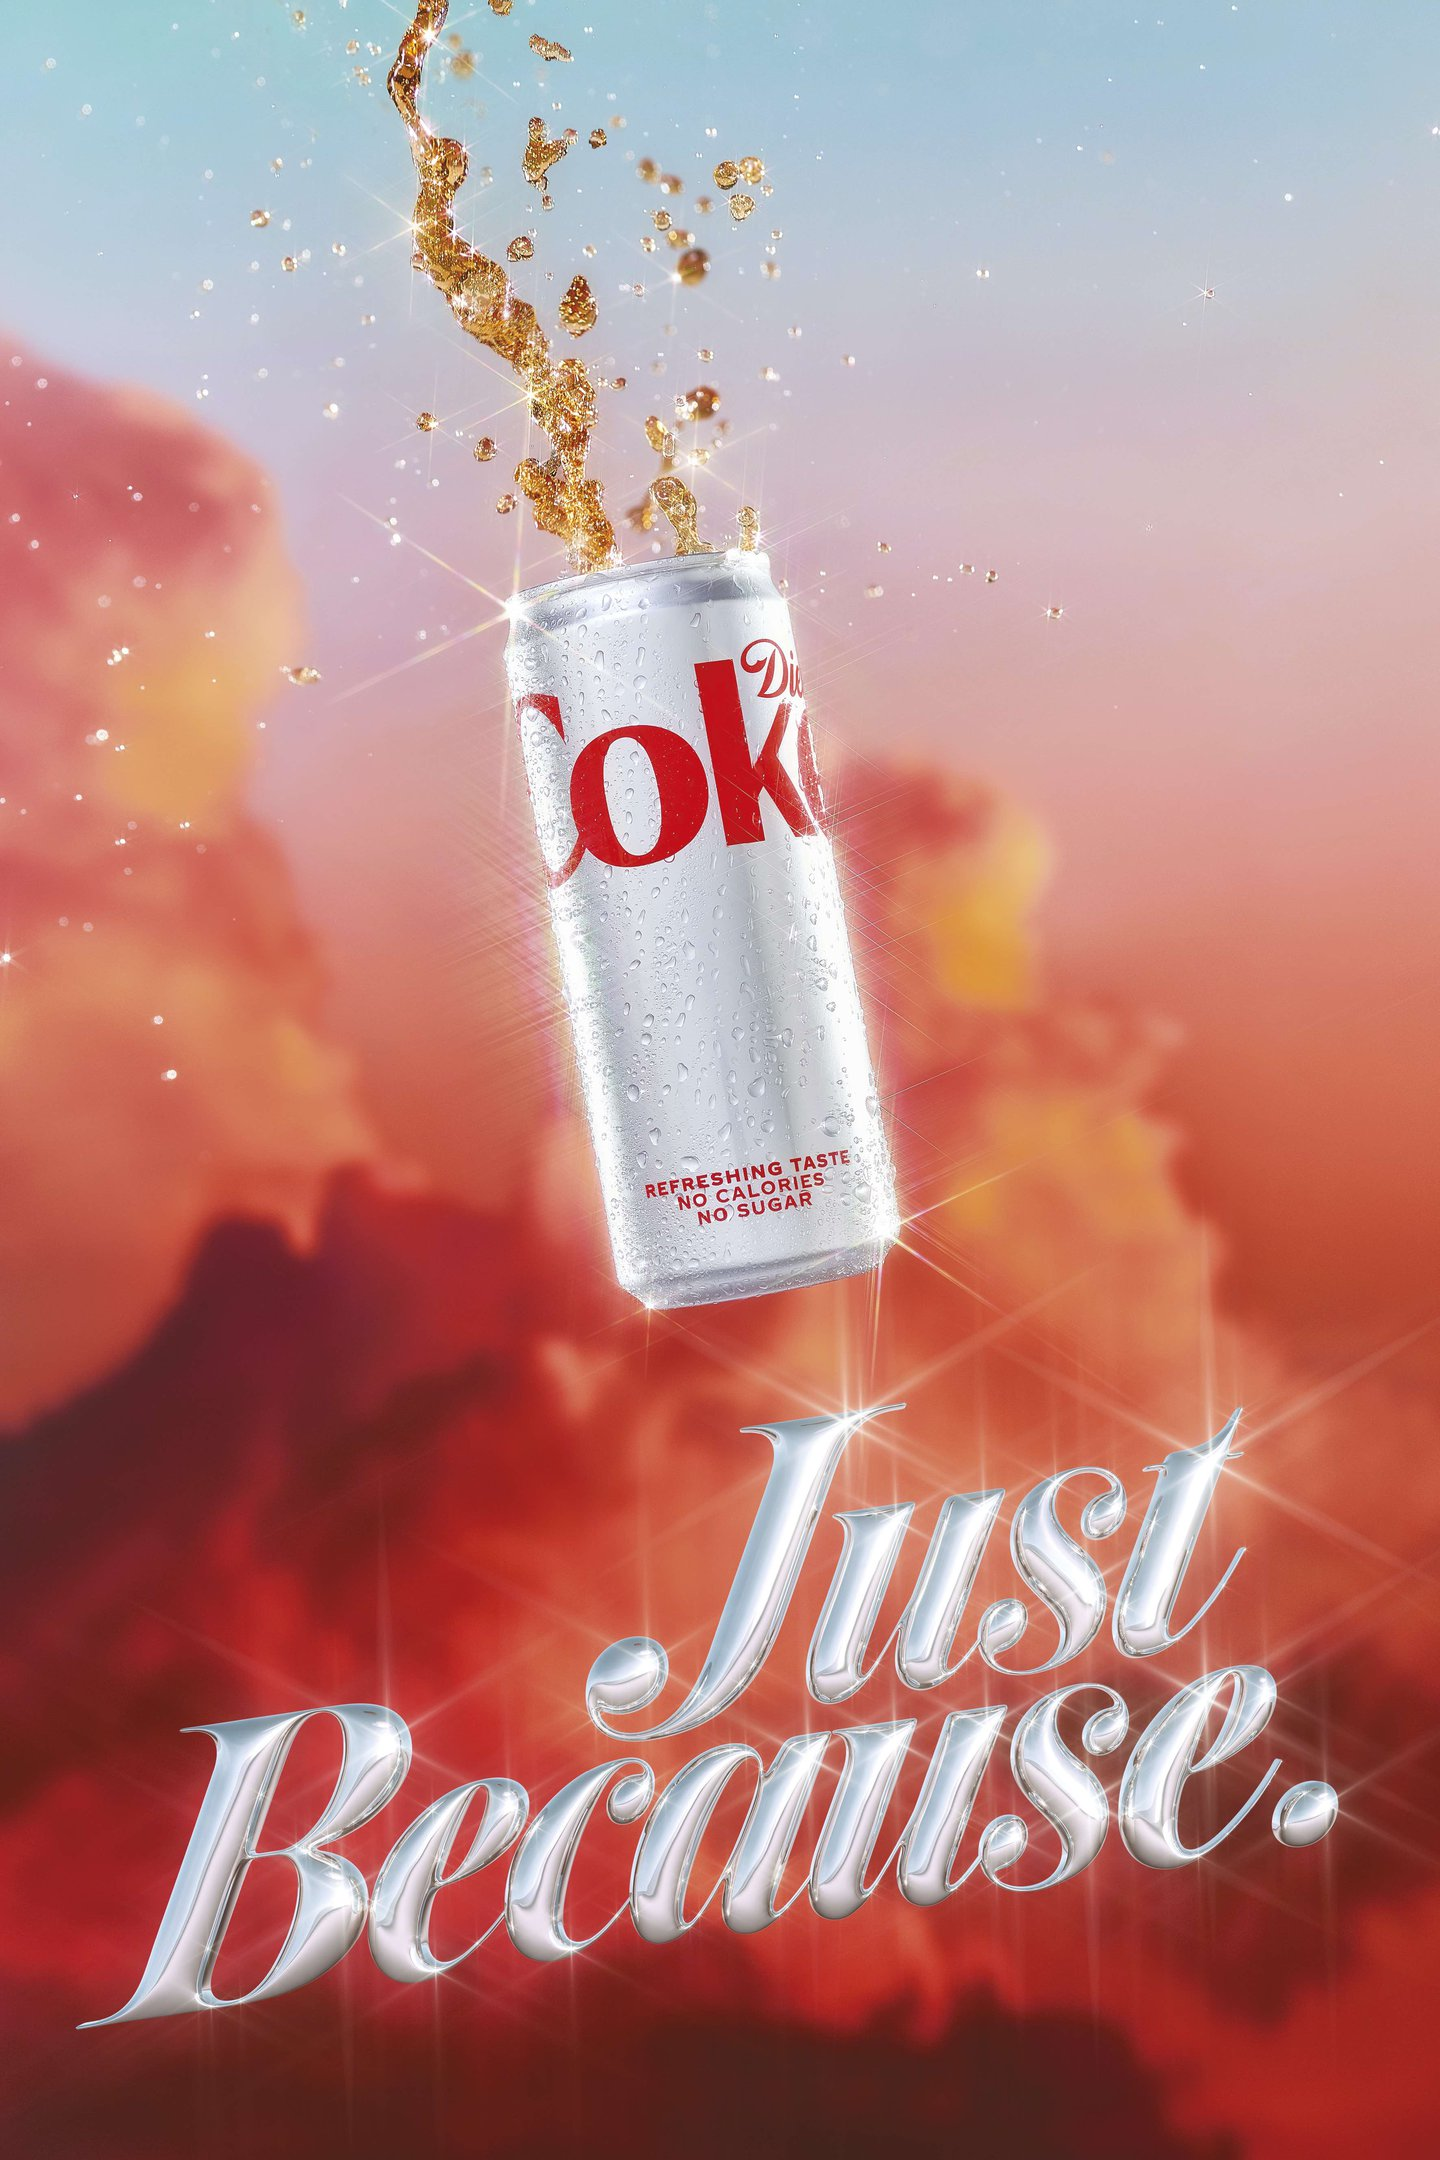 Thumbnail for Diet Coke's Campaign By Droga5 Gets Aesthetic Inspiration From the 80s and 90s